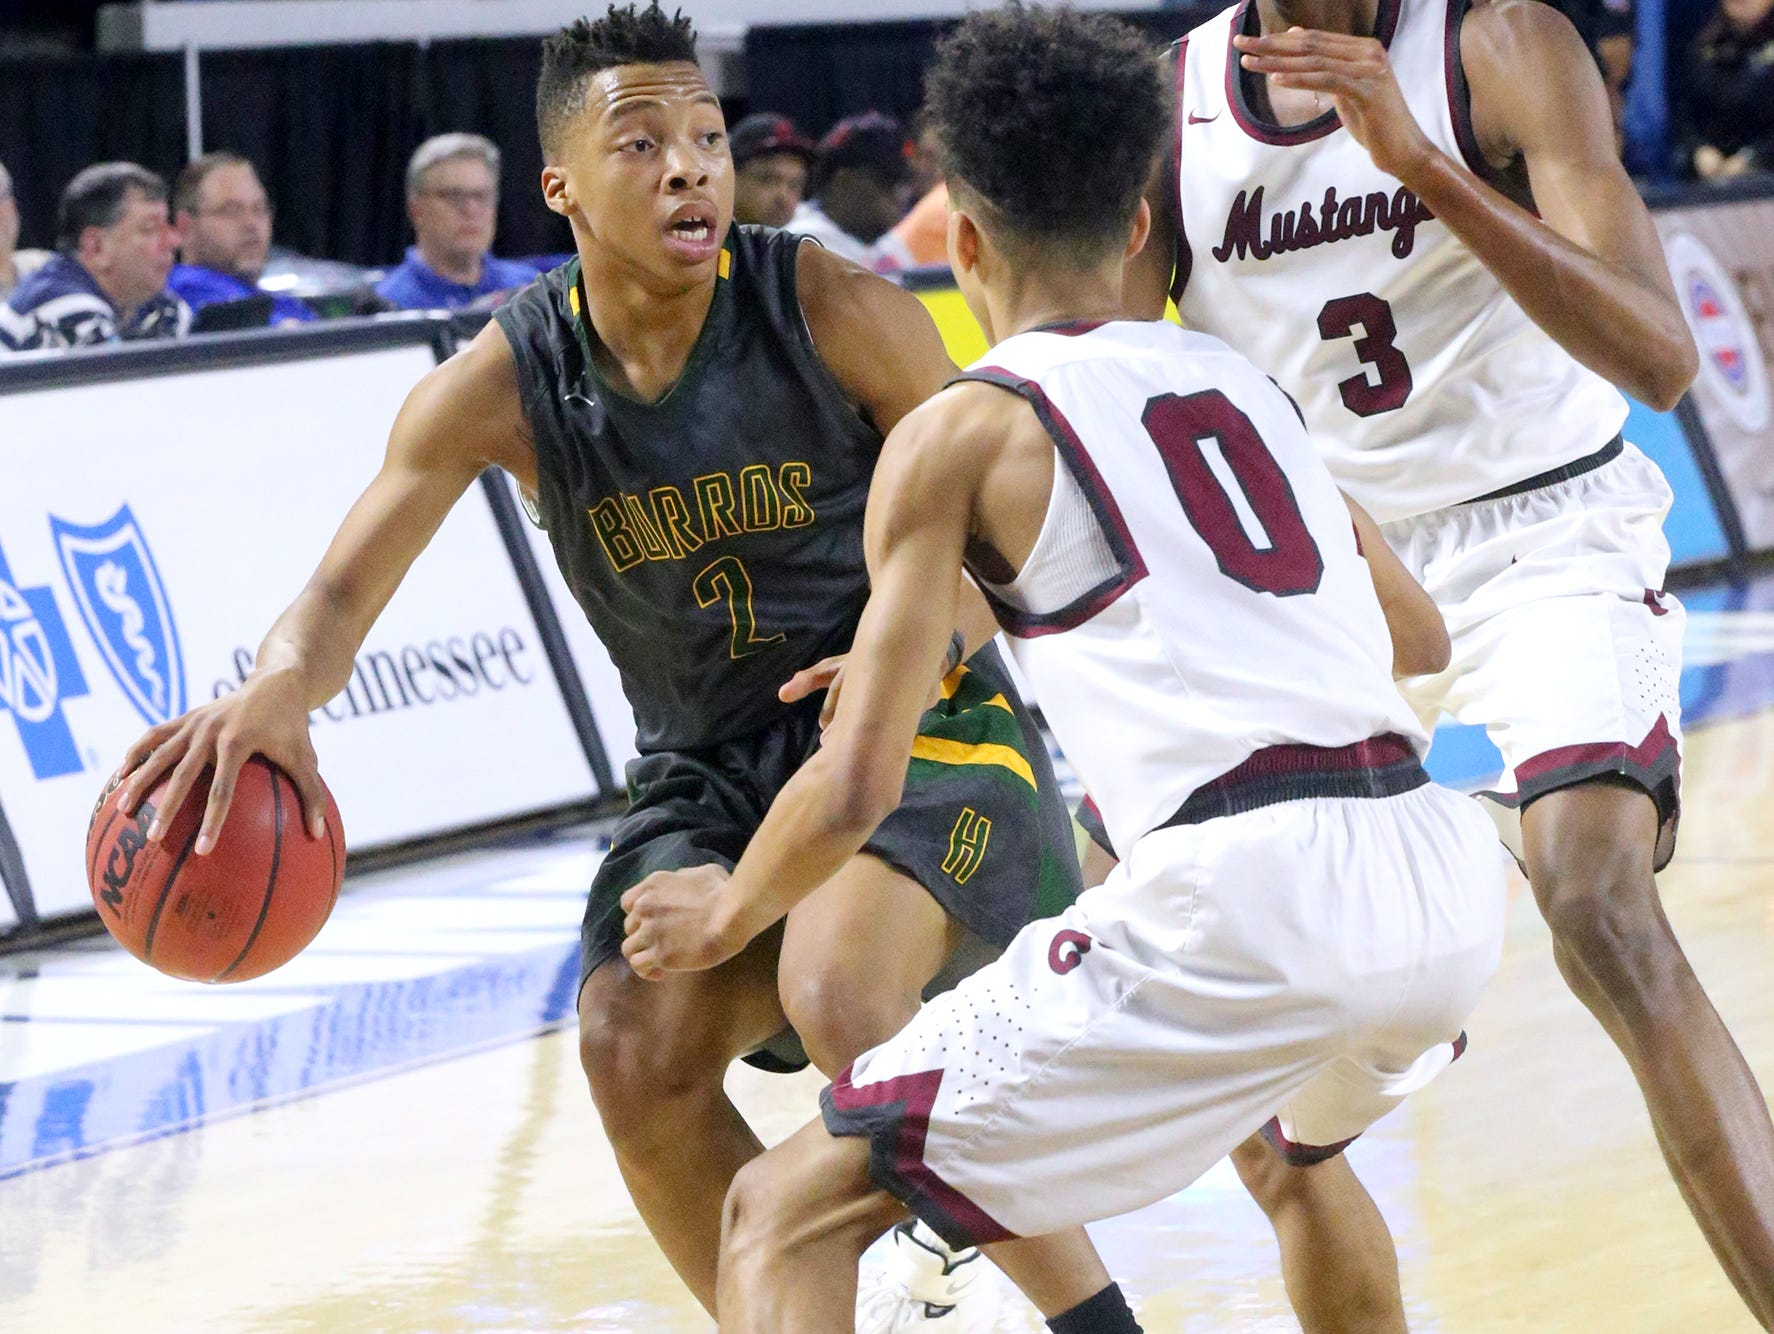 Hillsboro's Ronald Reeves (2) tries to look for an oper player as he is surrouned by Memphis East's Nikcolauz Merriweather (0) and Chandler Lawson (3) during the State Tournament Quarterfinal game, on Wednesday at MTSU.